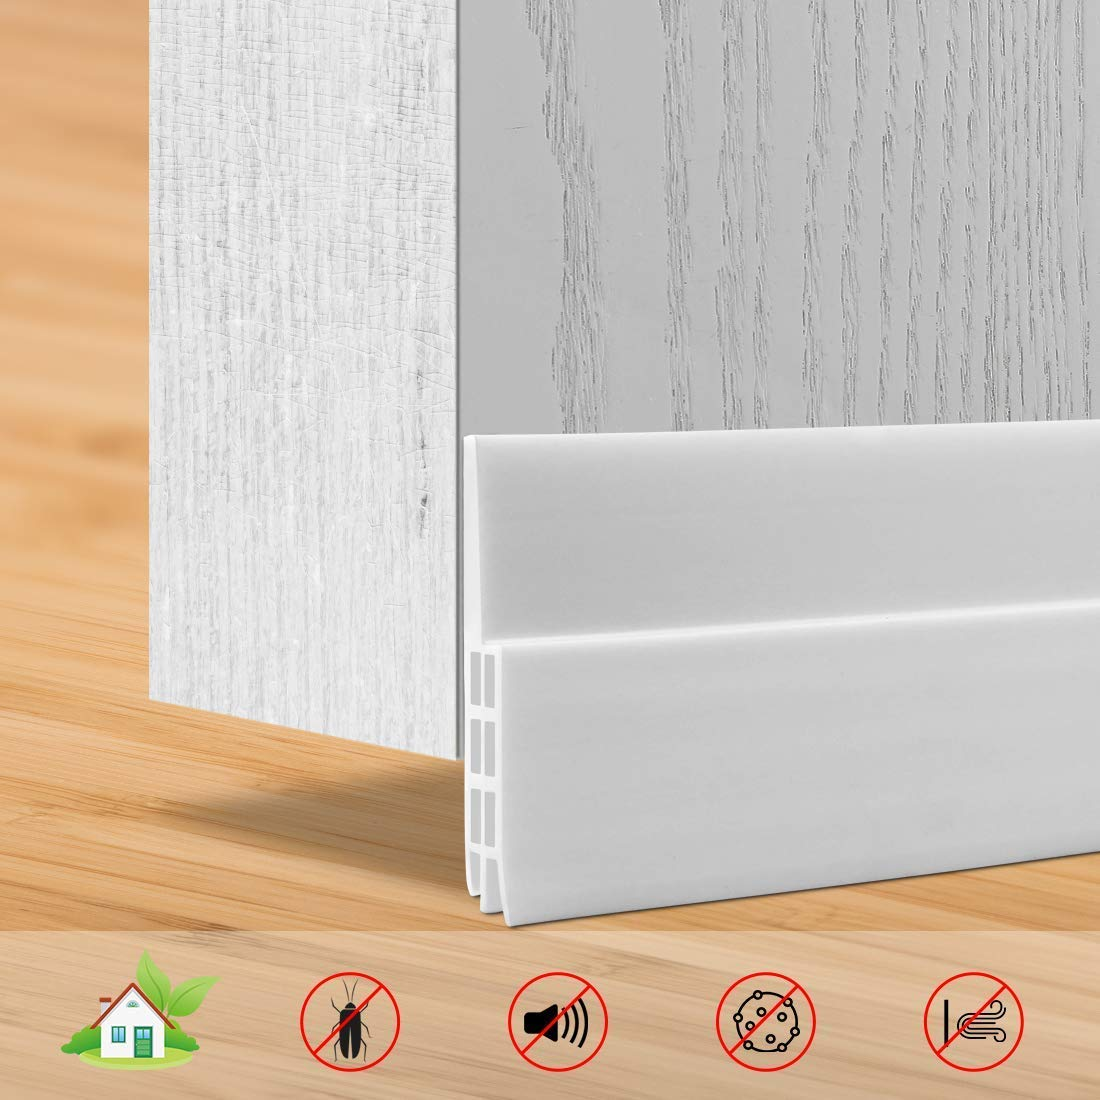 Strong Self-Adhesive Under Door Draft Blocker and Stopper, Door Weather Stripping for Noise Stopper,Windproof and Prevent Bugs,2\